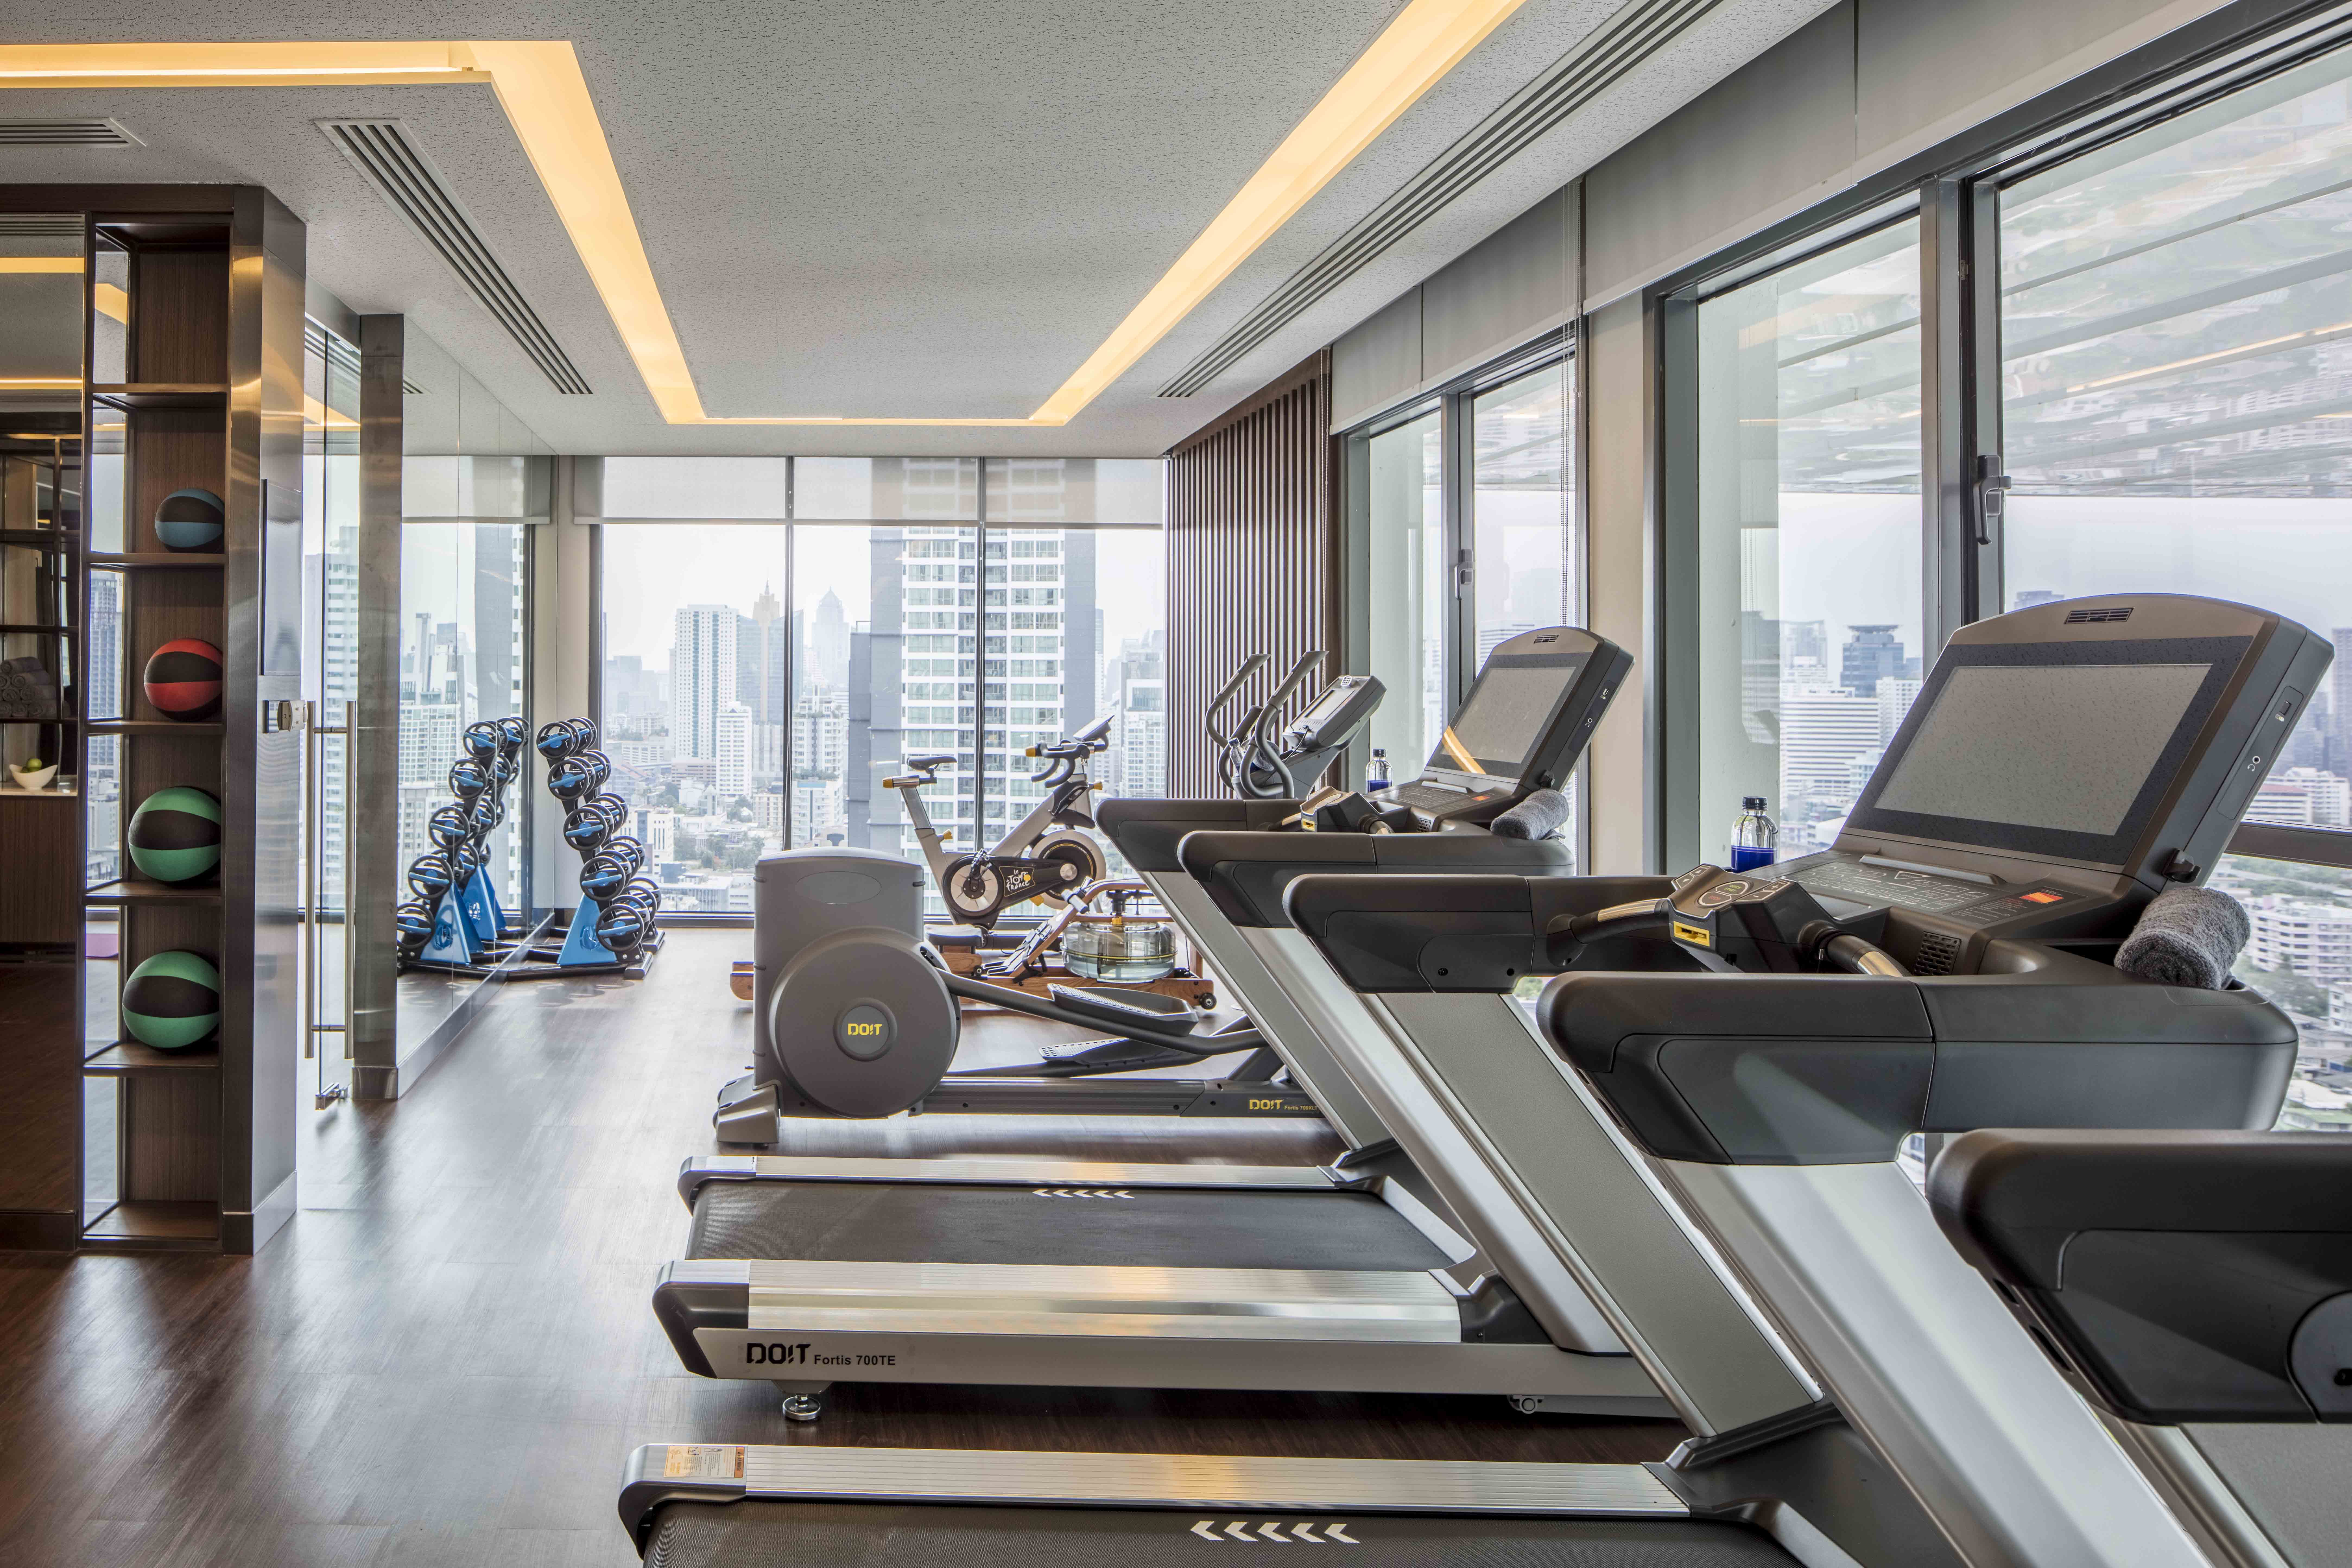 10 GYM for Suite Guest on Level 26